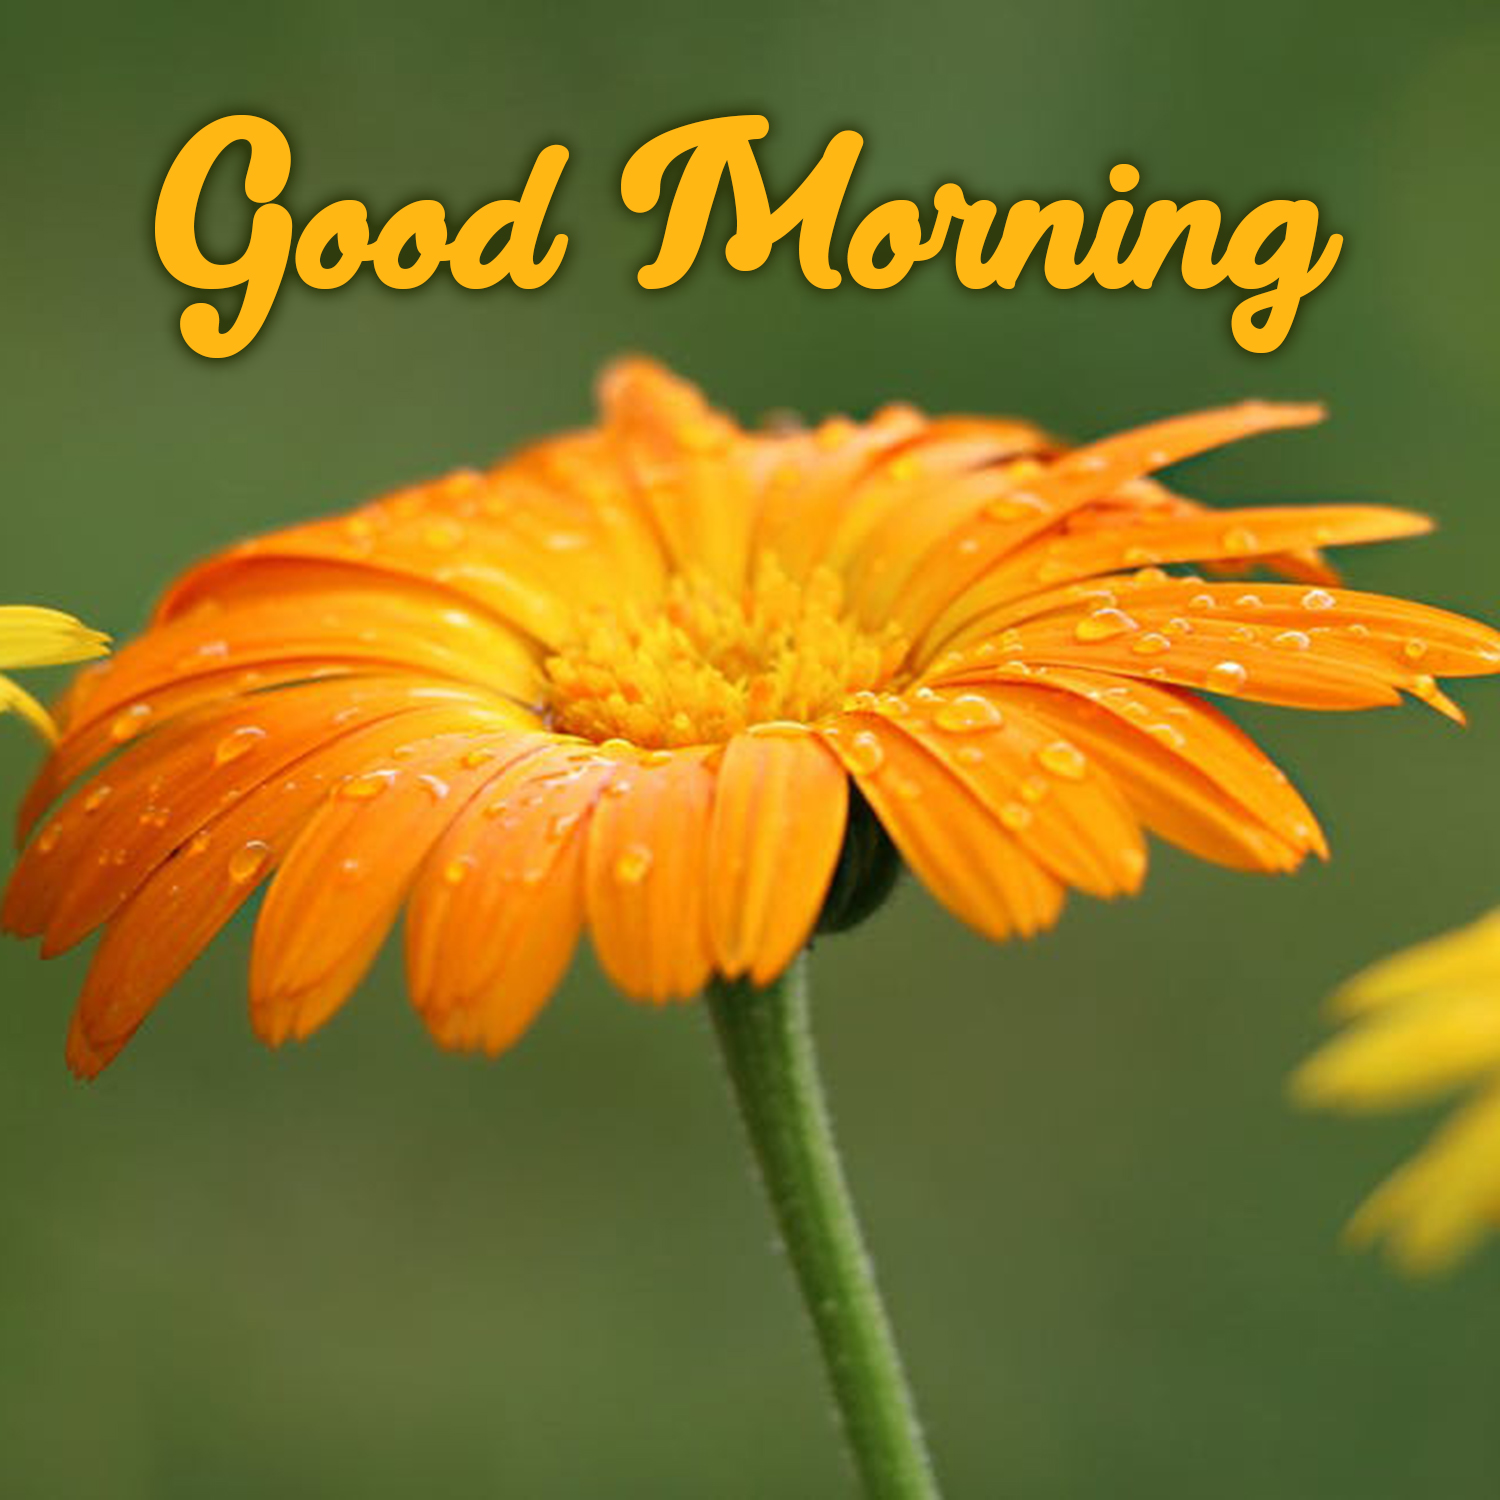 Download And Share Amazing Good Morning Flowers Images Good Morning Images Quotes Wishes Messages Greetings Ecards